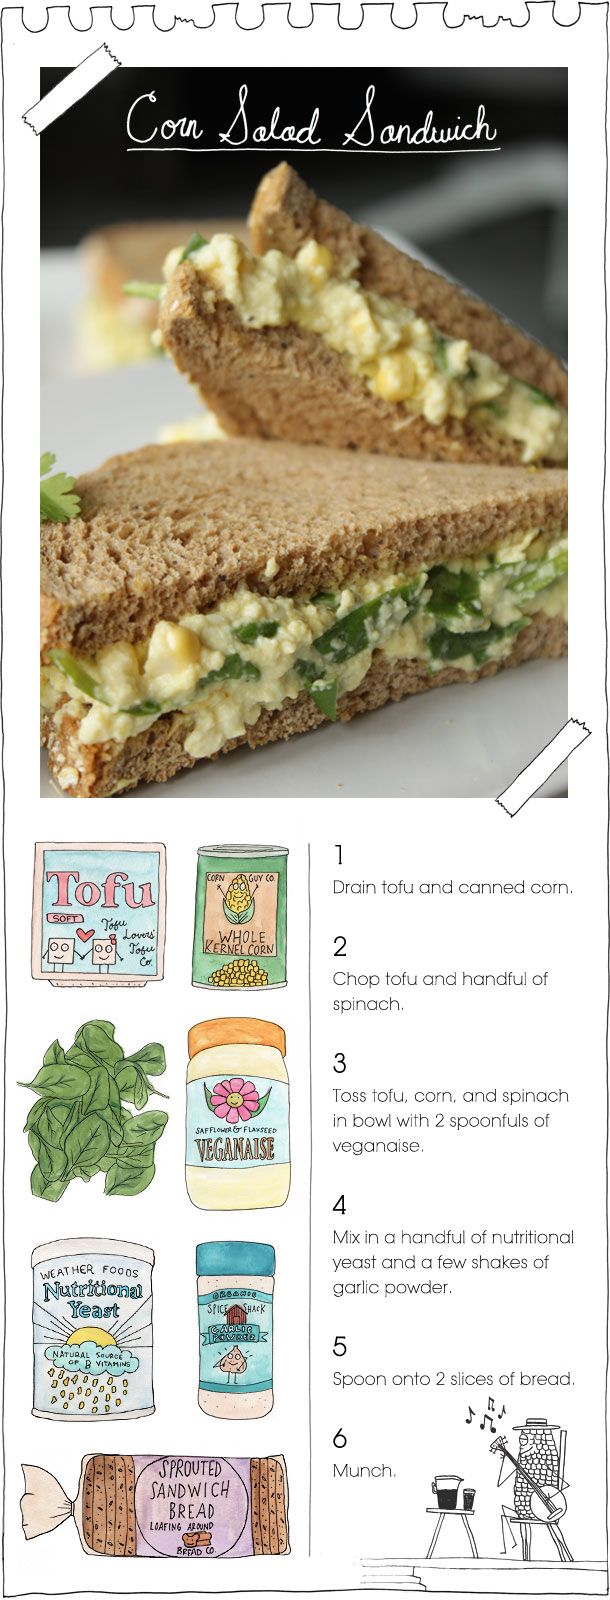 I make this all the time, great for lunches.  My 3 year old niece liked it and she is really picky so maybe other kids would too